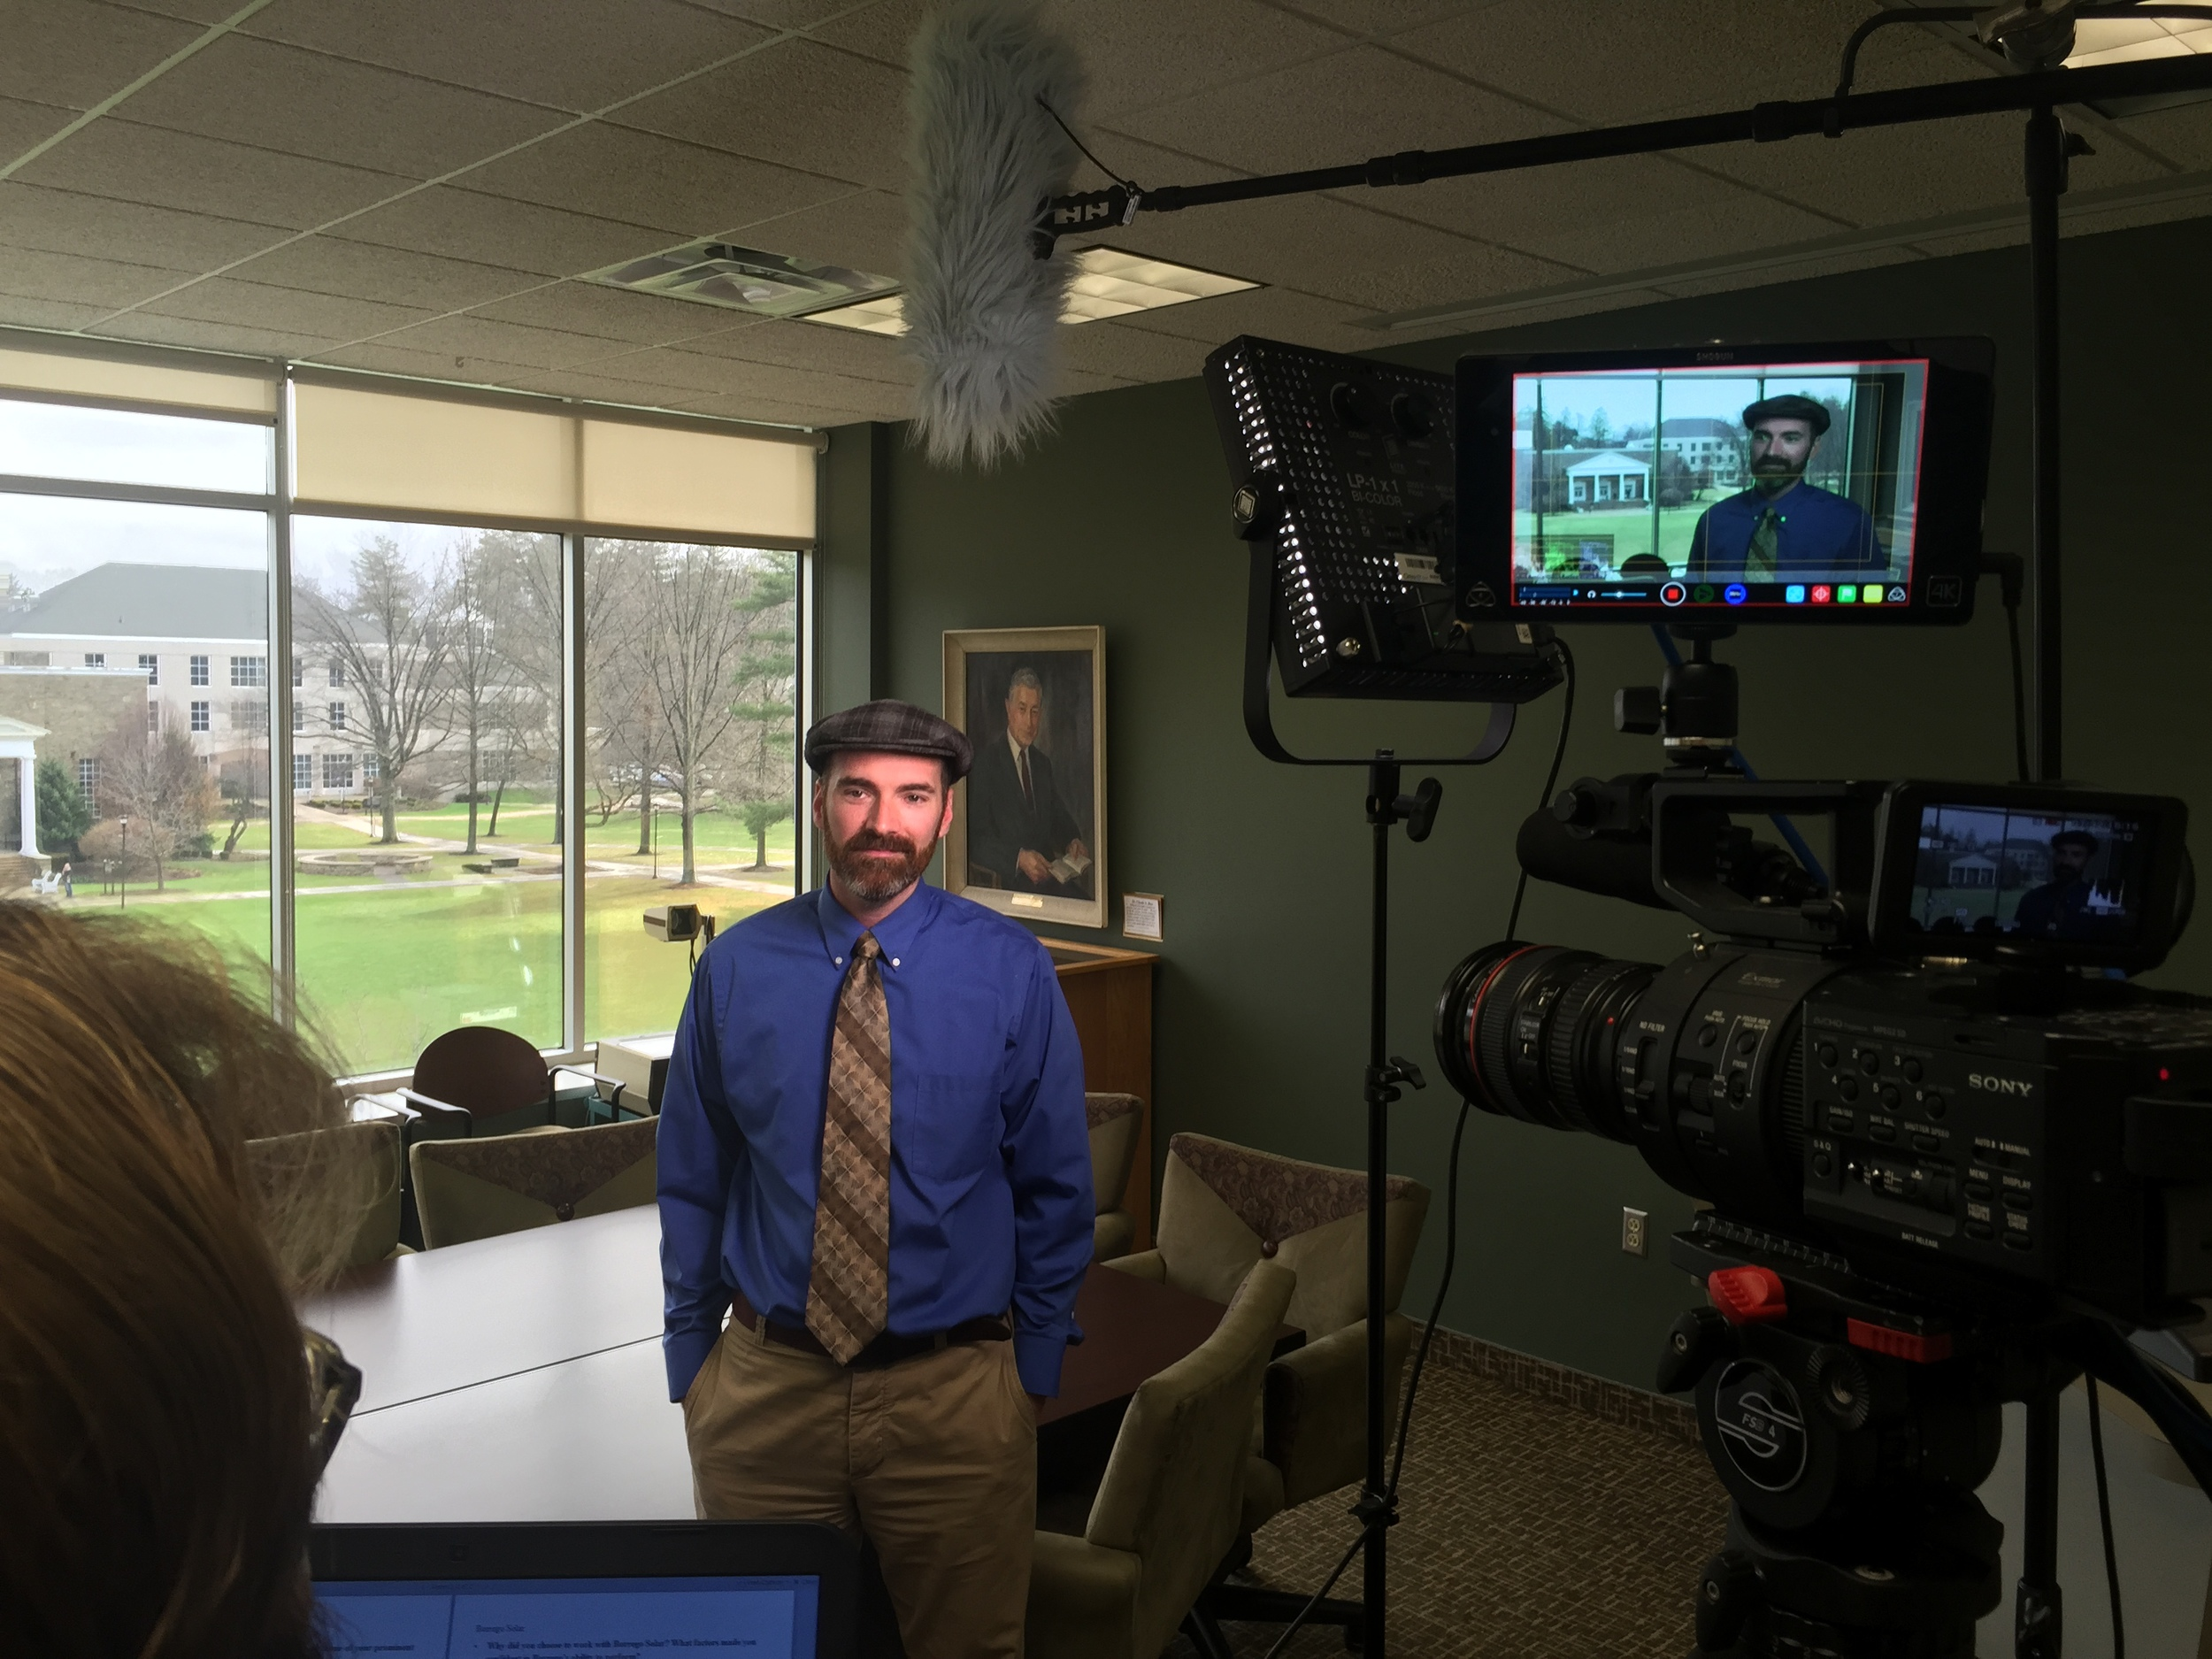 Indoors filming an interview with Brian Webb from Houghton College. Litepanels LED are great for this kind of setup and give a nice soft light with great control of color temperature and hardness.